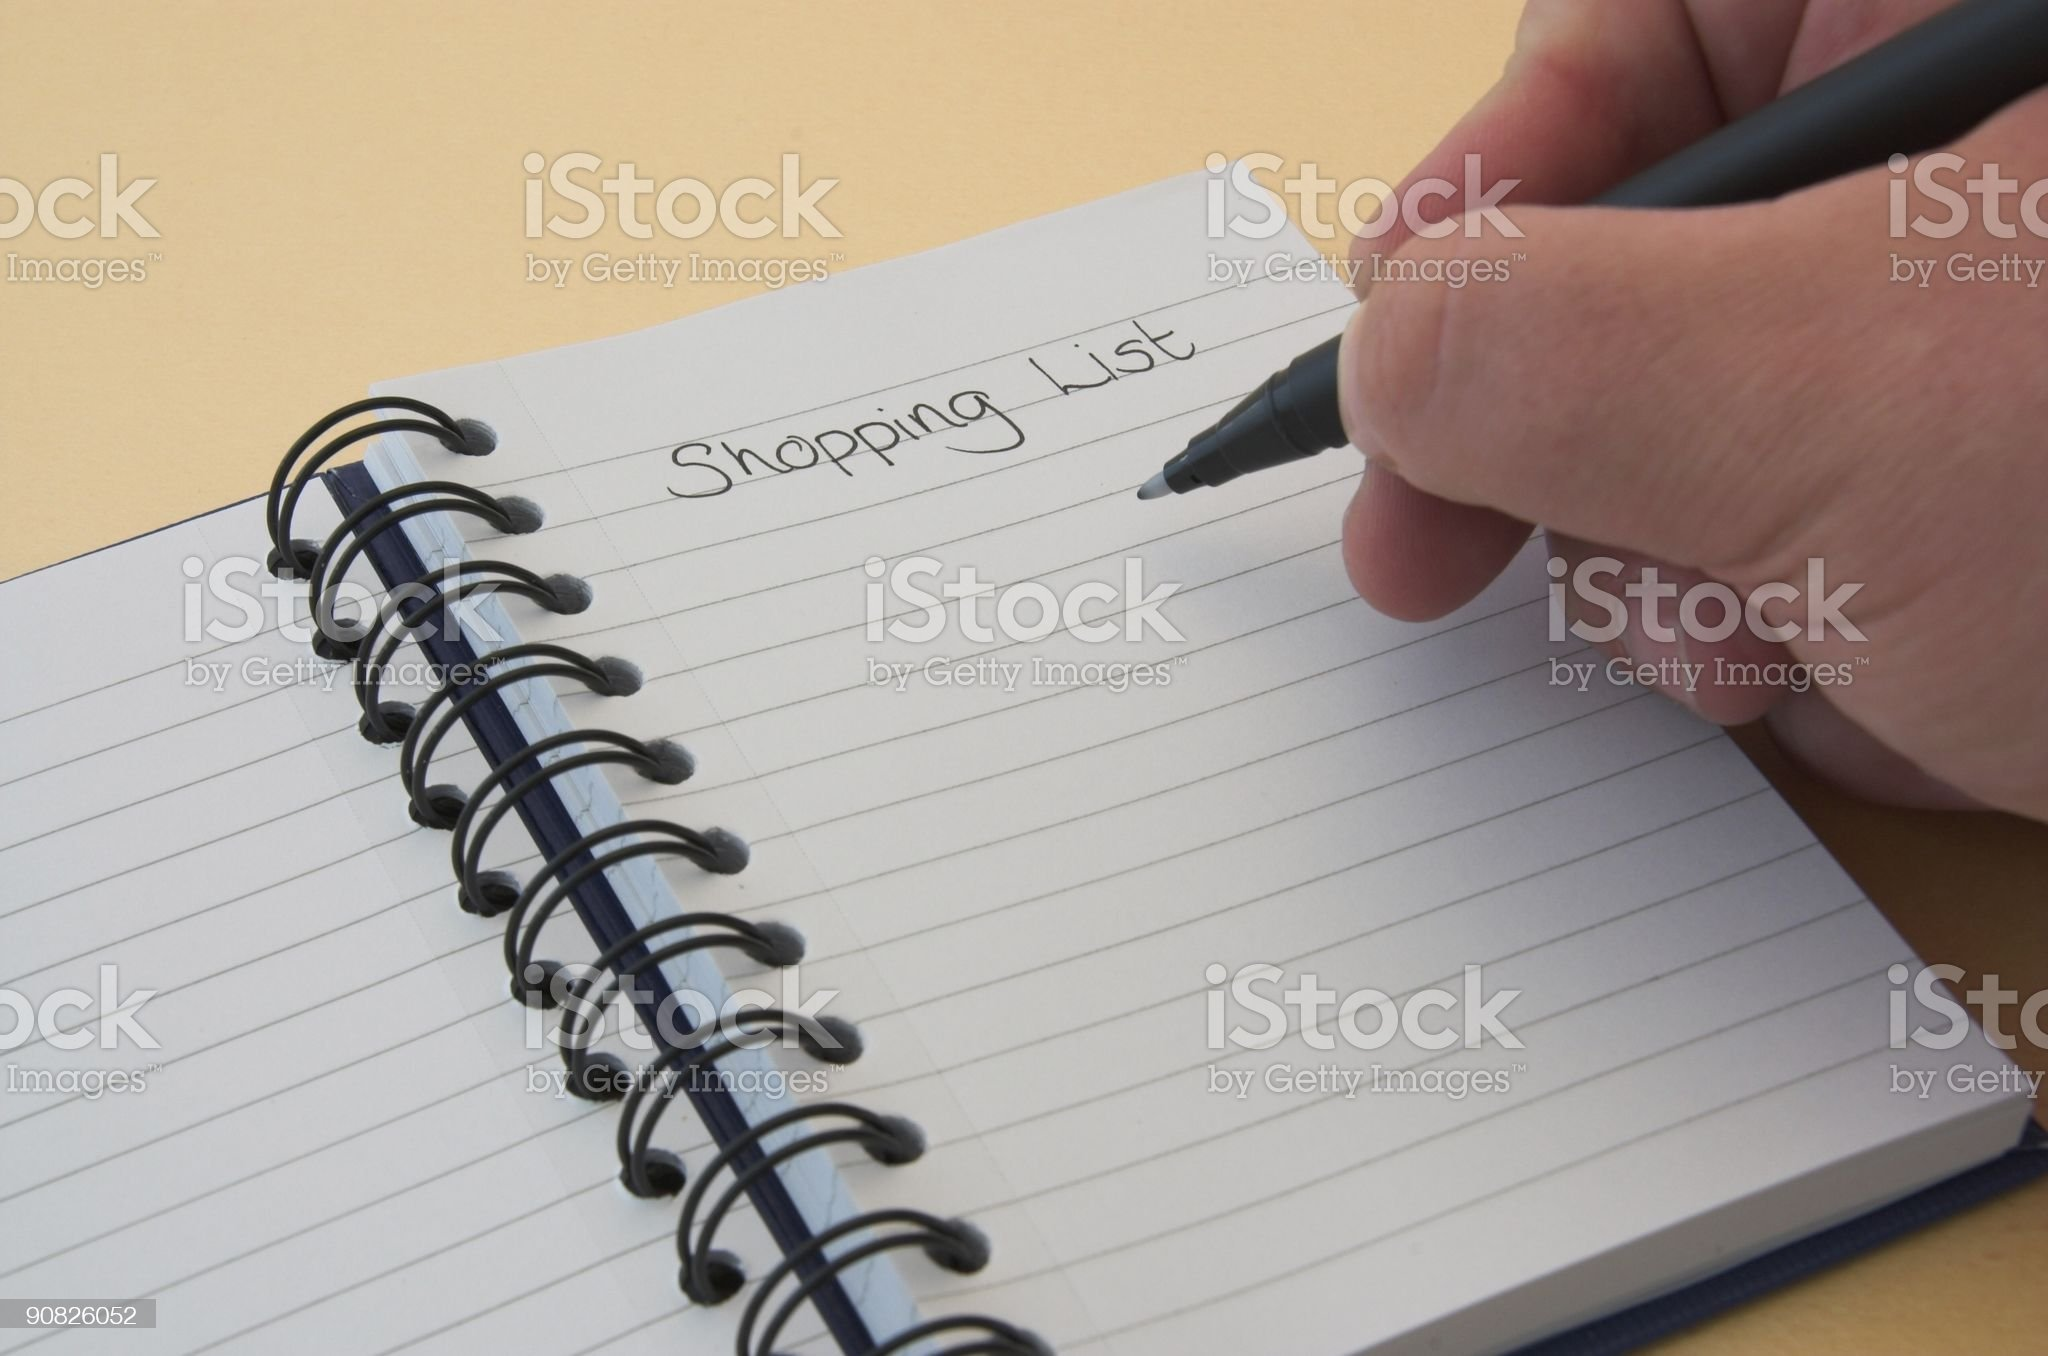 Writing a shopping list royalty-free stock photo